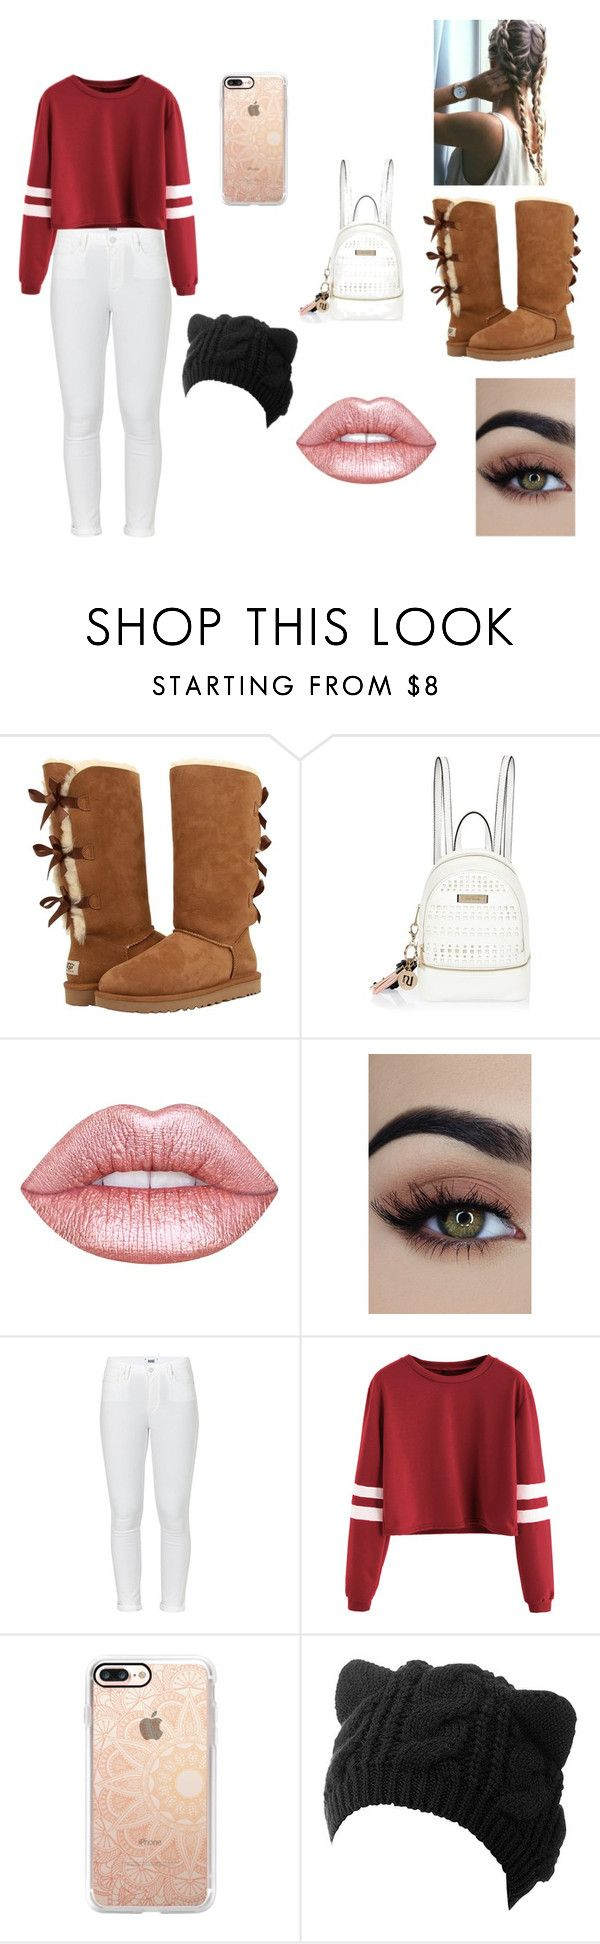 """""""cold day outfit"""" by dasminxoxoquinn on Polyvore featuring UGG, River Island, Lime Crime, Paige Denim and Casetify"""